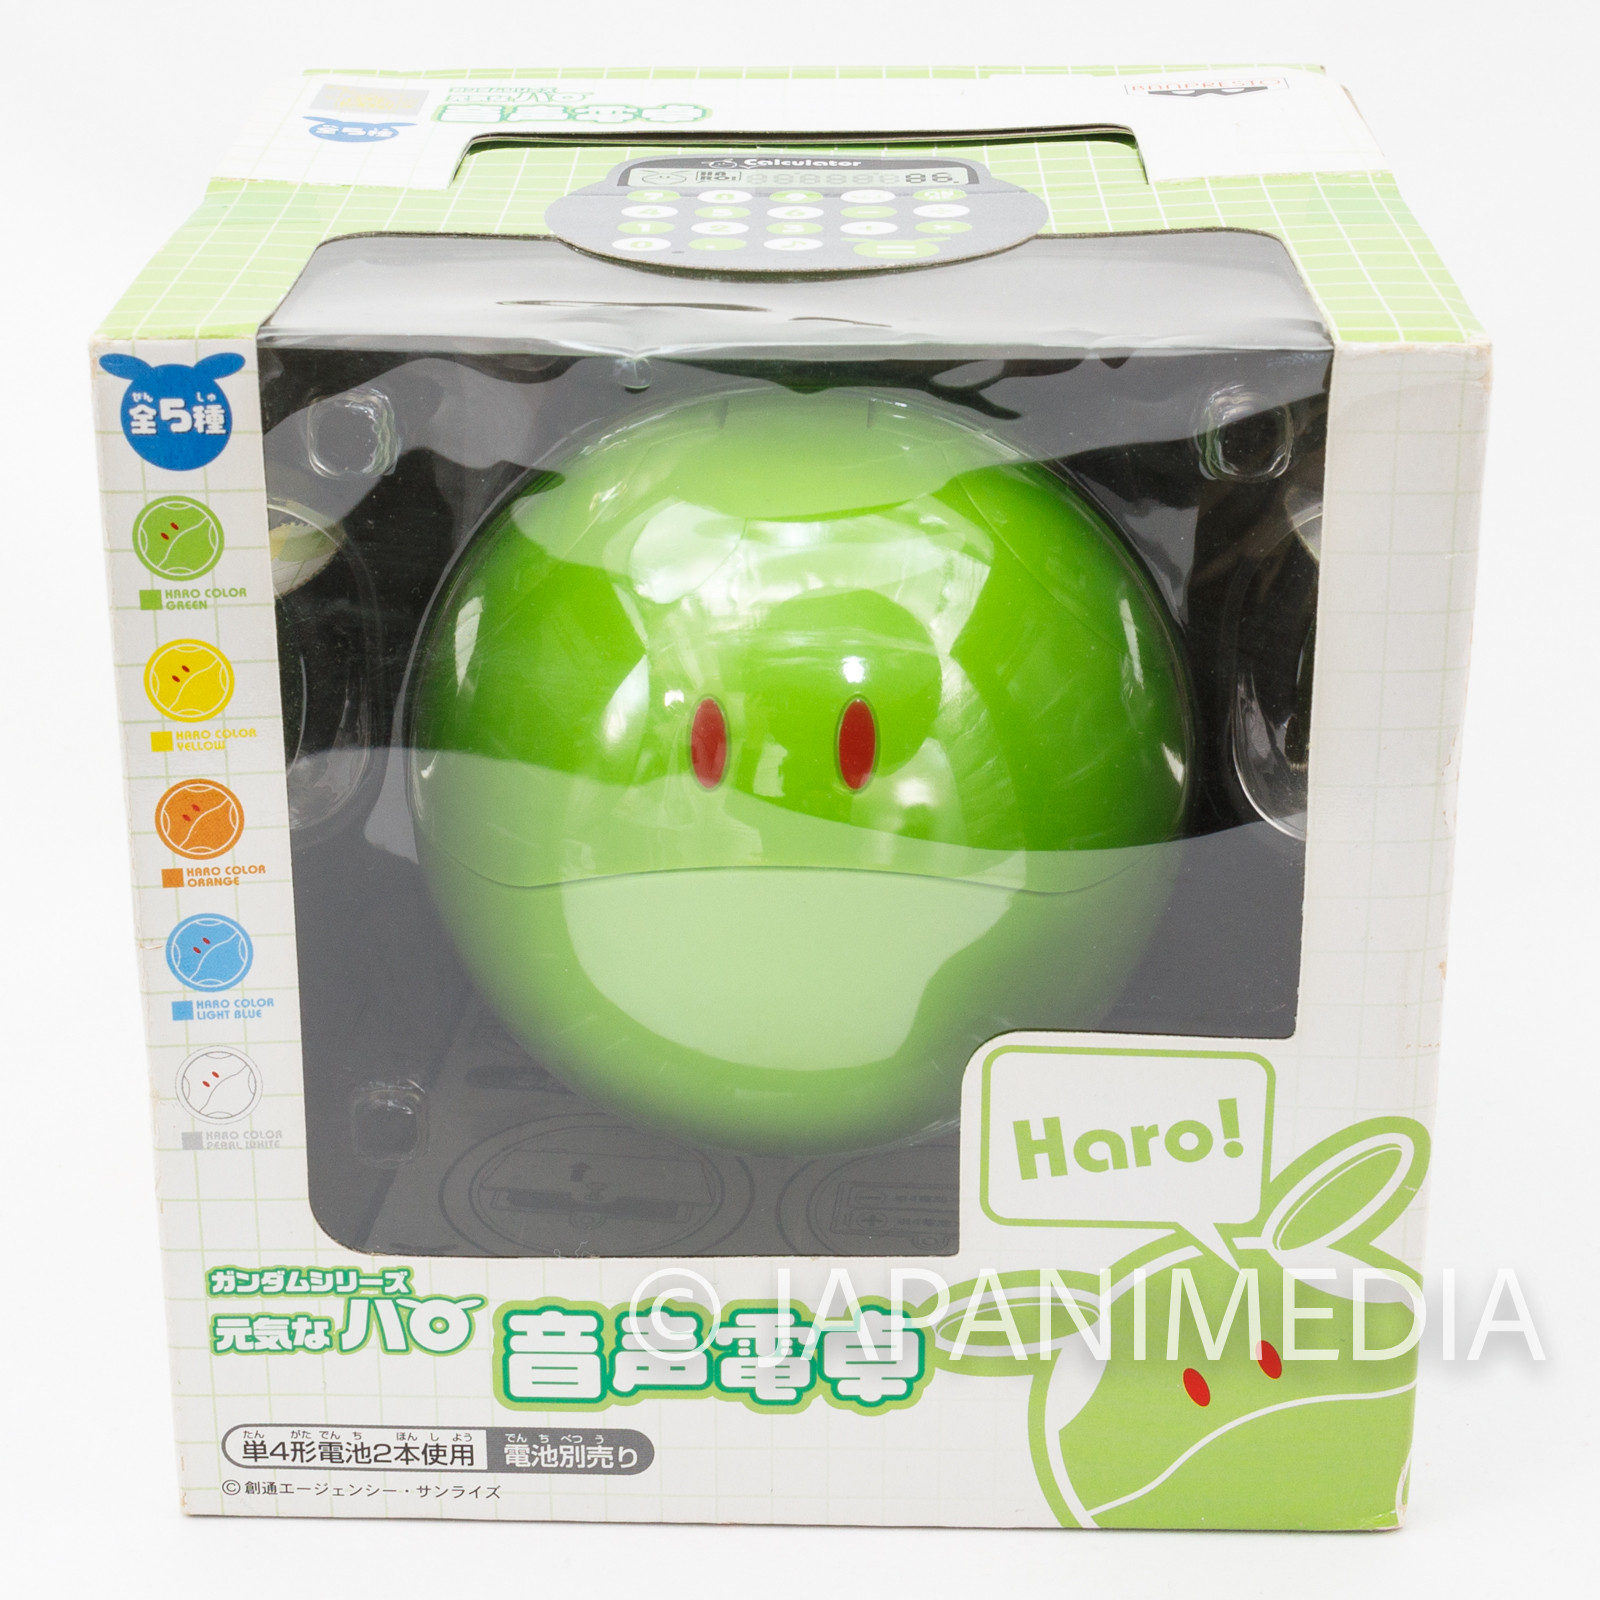 Gundam Mascot Robot Haro Voice Sound Calculator Figure Banpresto JAPAN ANIME